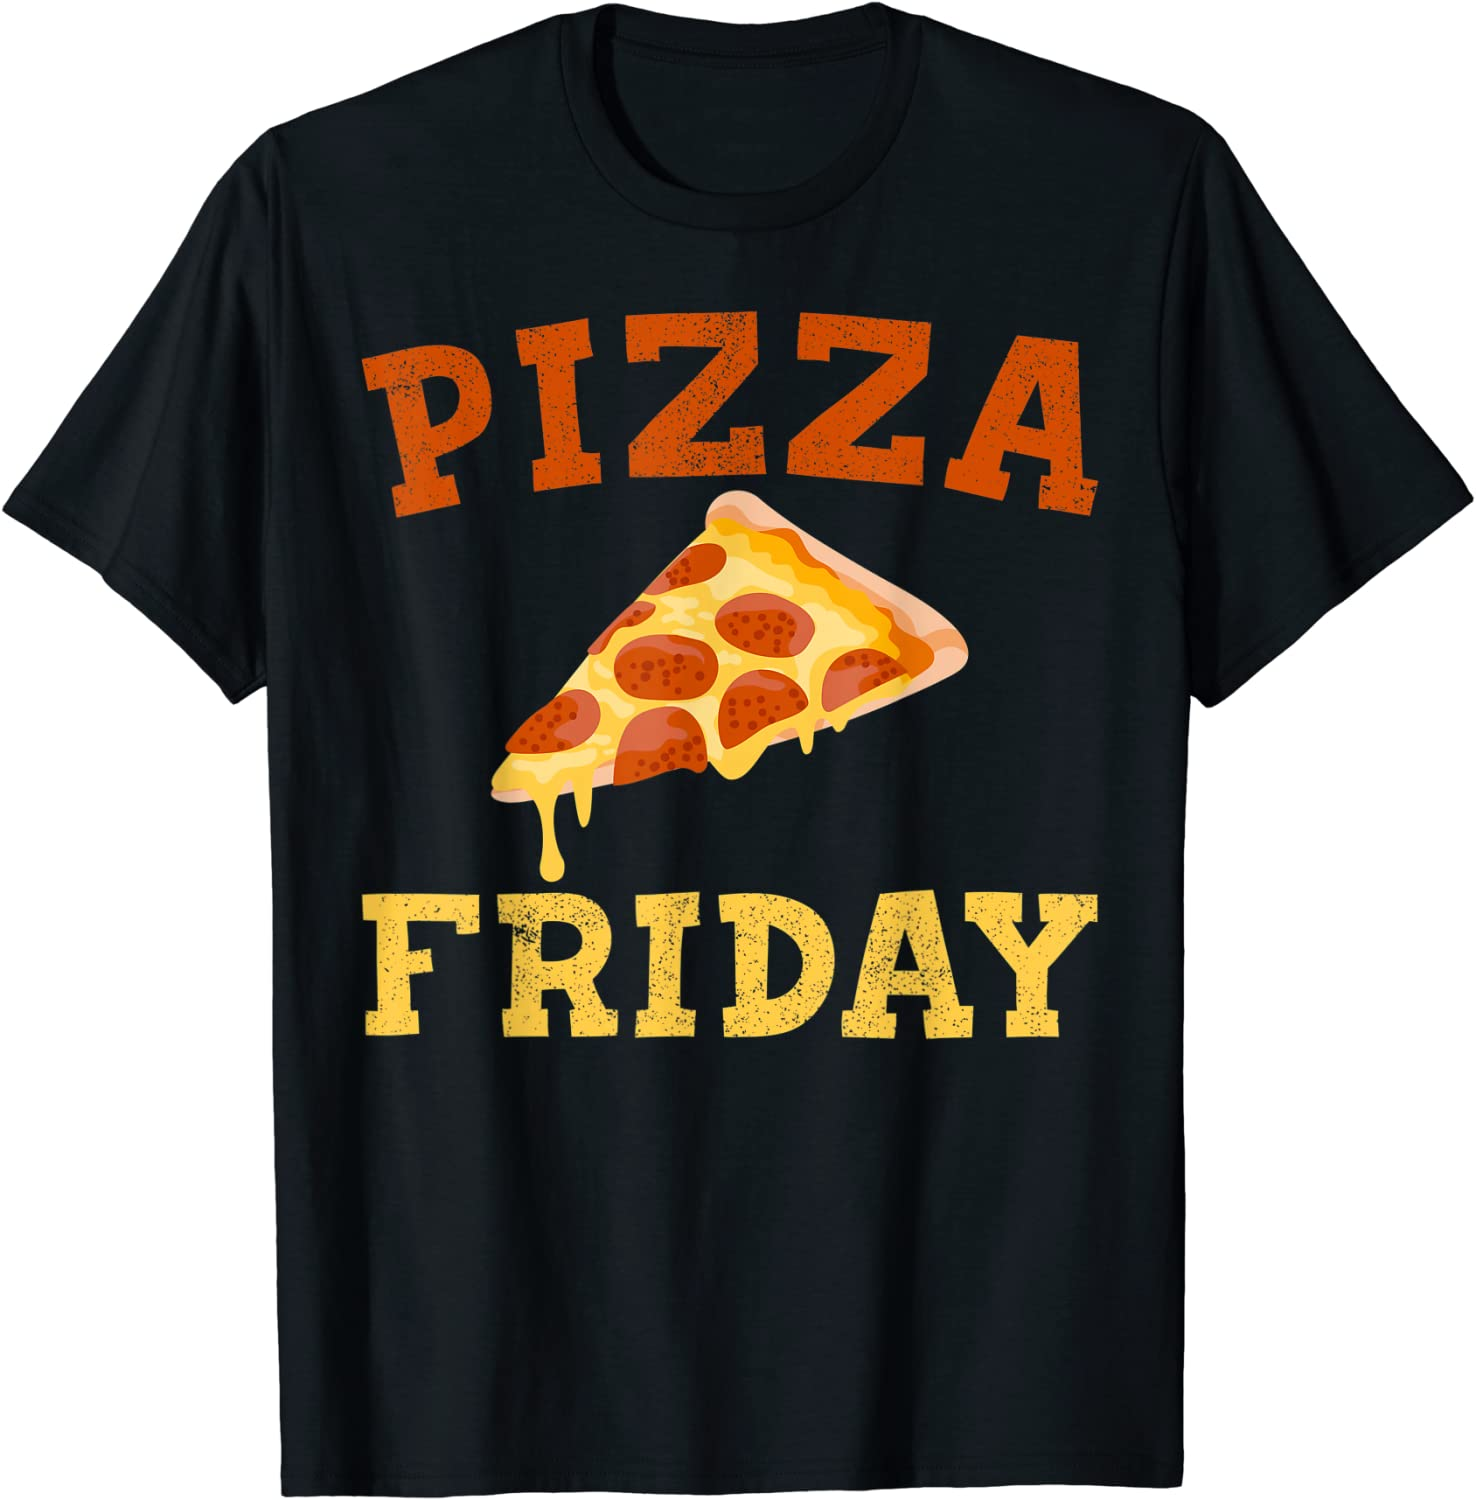 Funny Pizza Gift For Men Women Cool Pizza Friday Food Pun T-Shirt